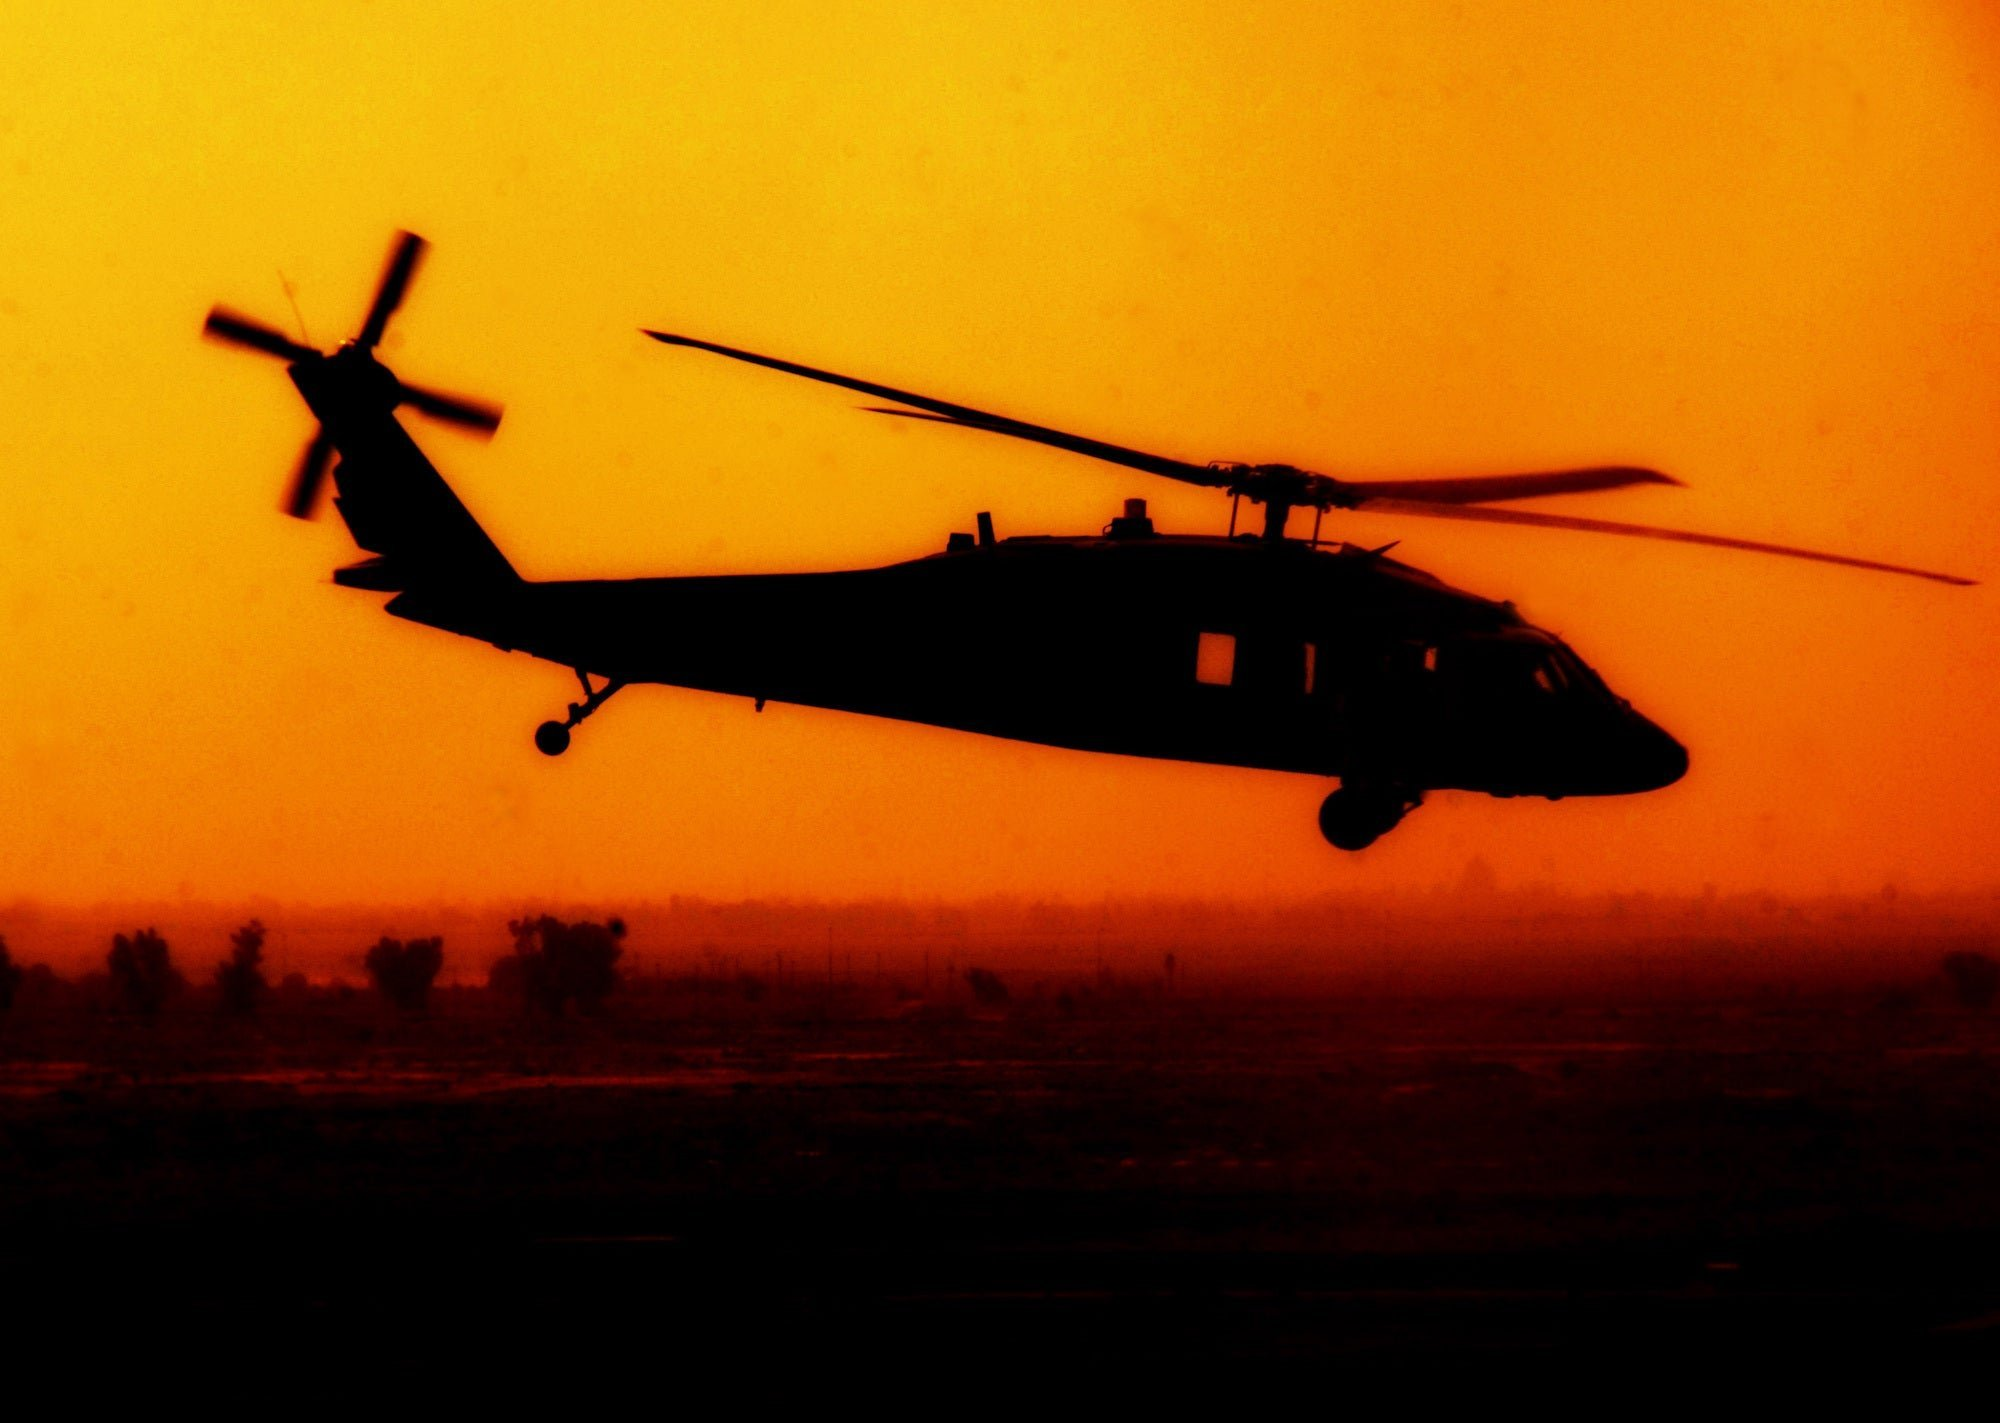 The mystery of the Bin Laden raid helicopters